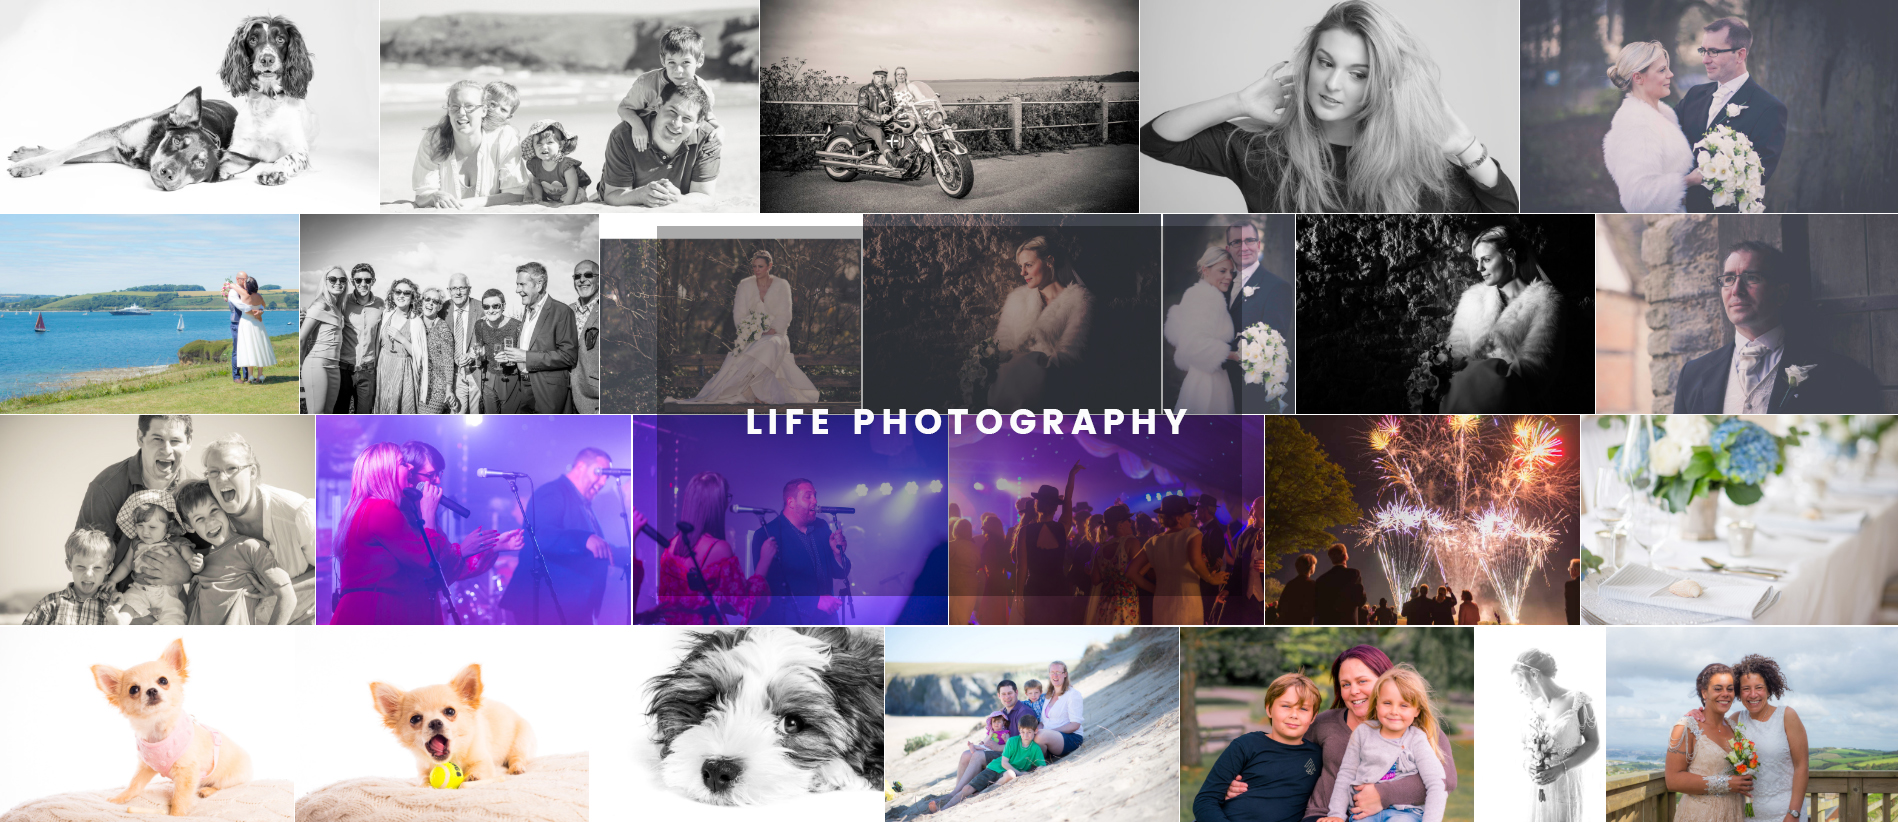 Lifestyle photography by Claire Wilson, LLE Photography, Cornwall